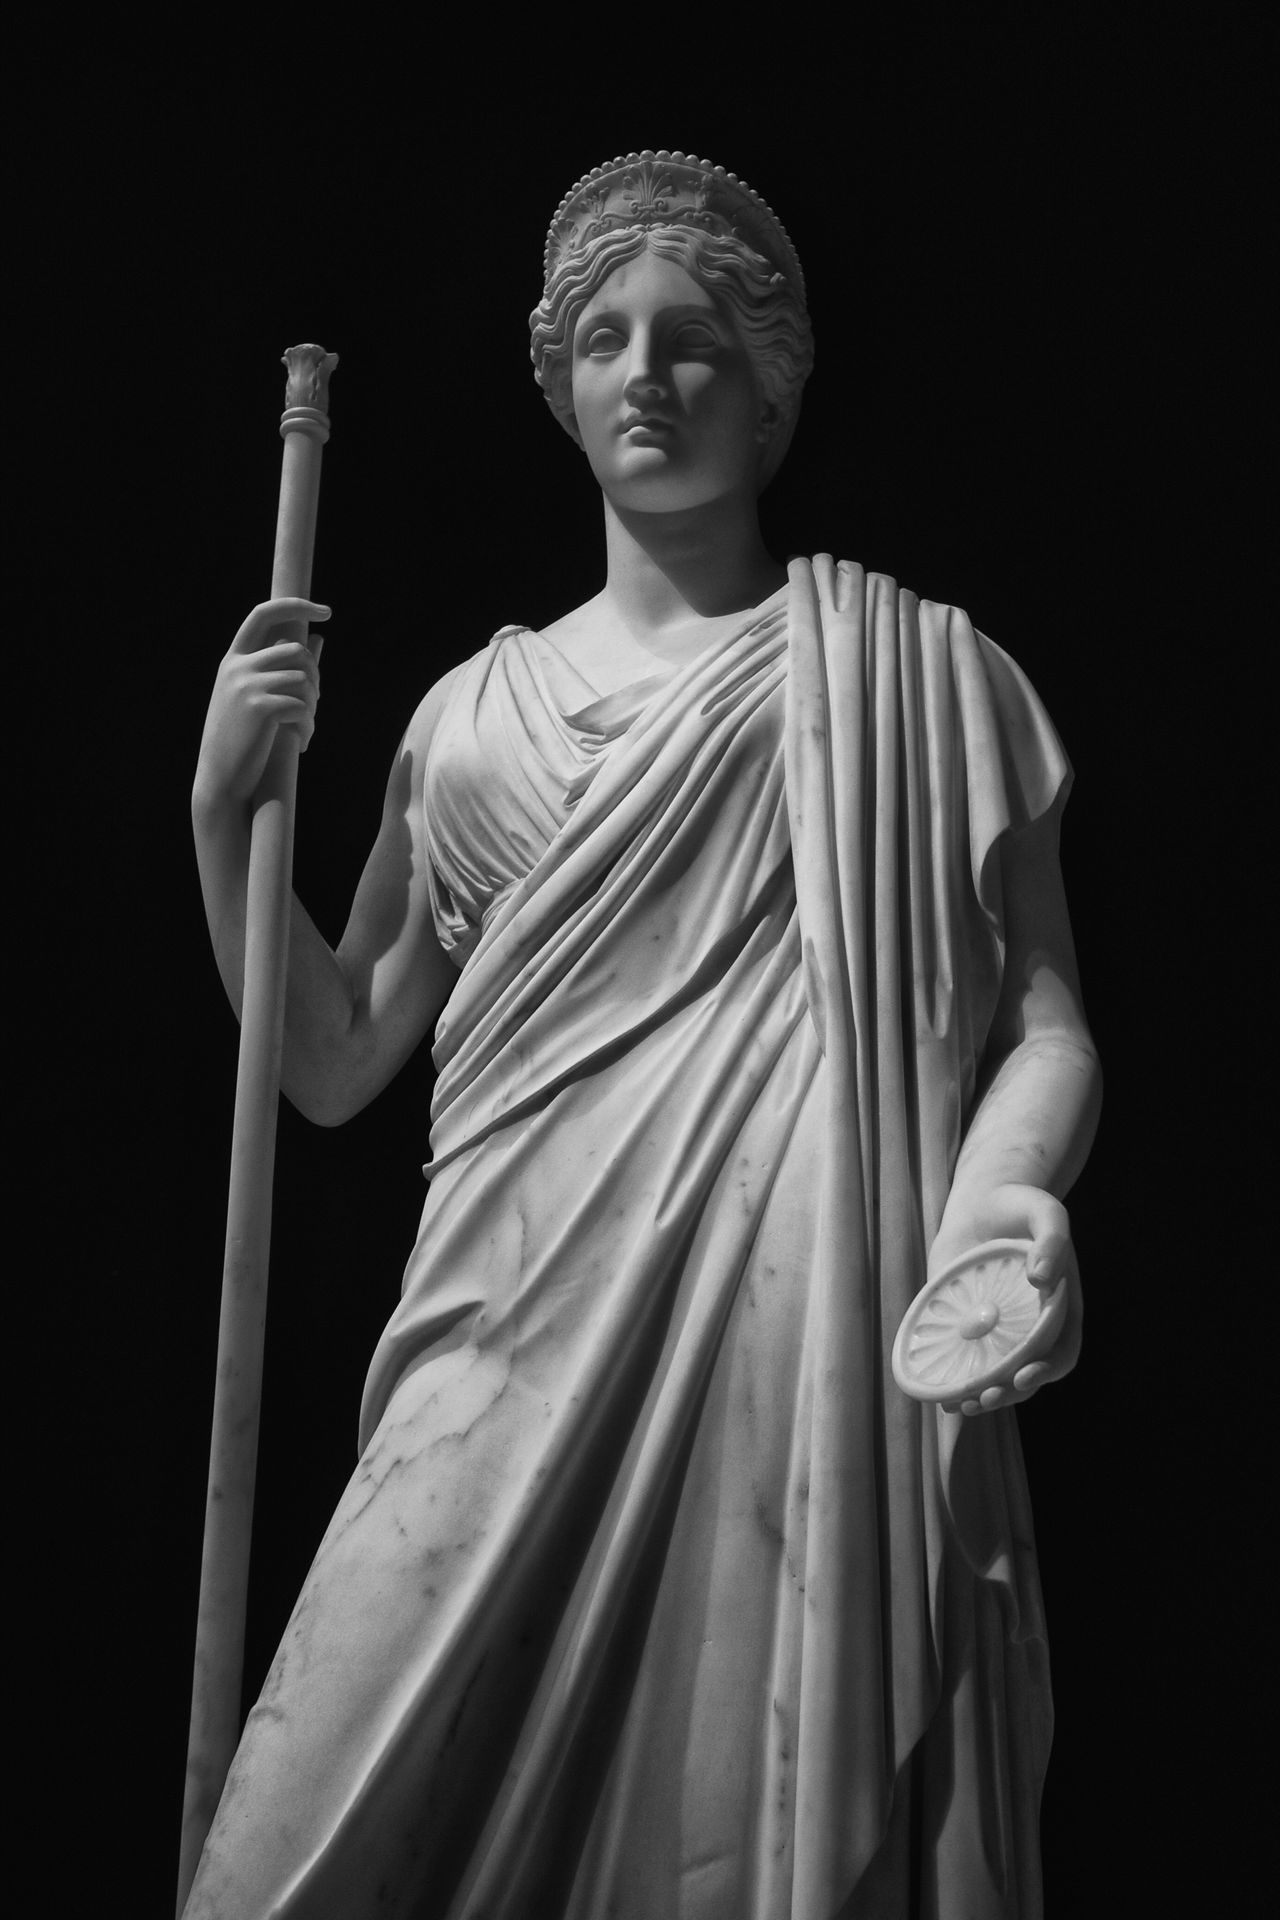 Another statue from Rome's Galleria Nazionale d'Arte Moderna Statue Sculpture Woman Figure Black And White Black & White Blackandwhite Monochrome Italy Rome Classical God Deity ArtWork Art Stone Marble Historic